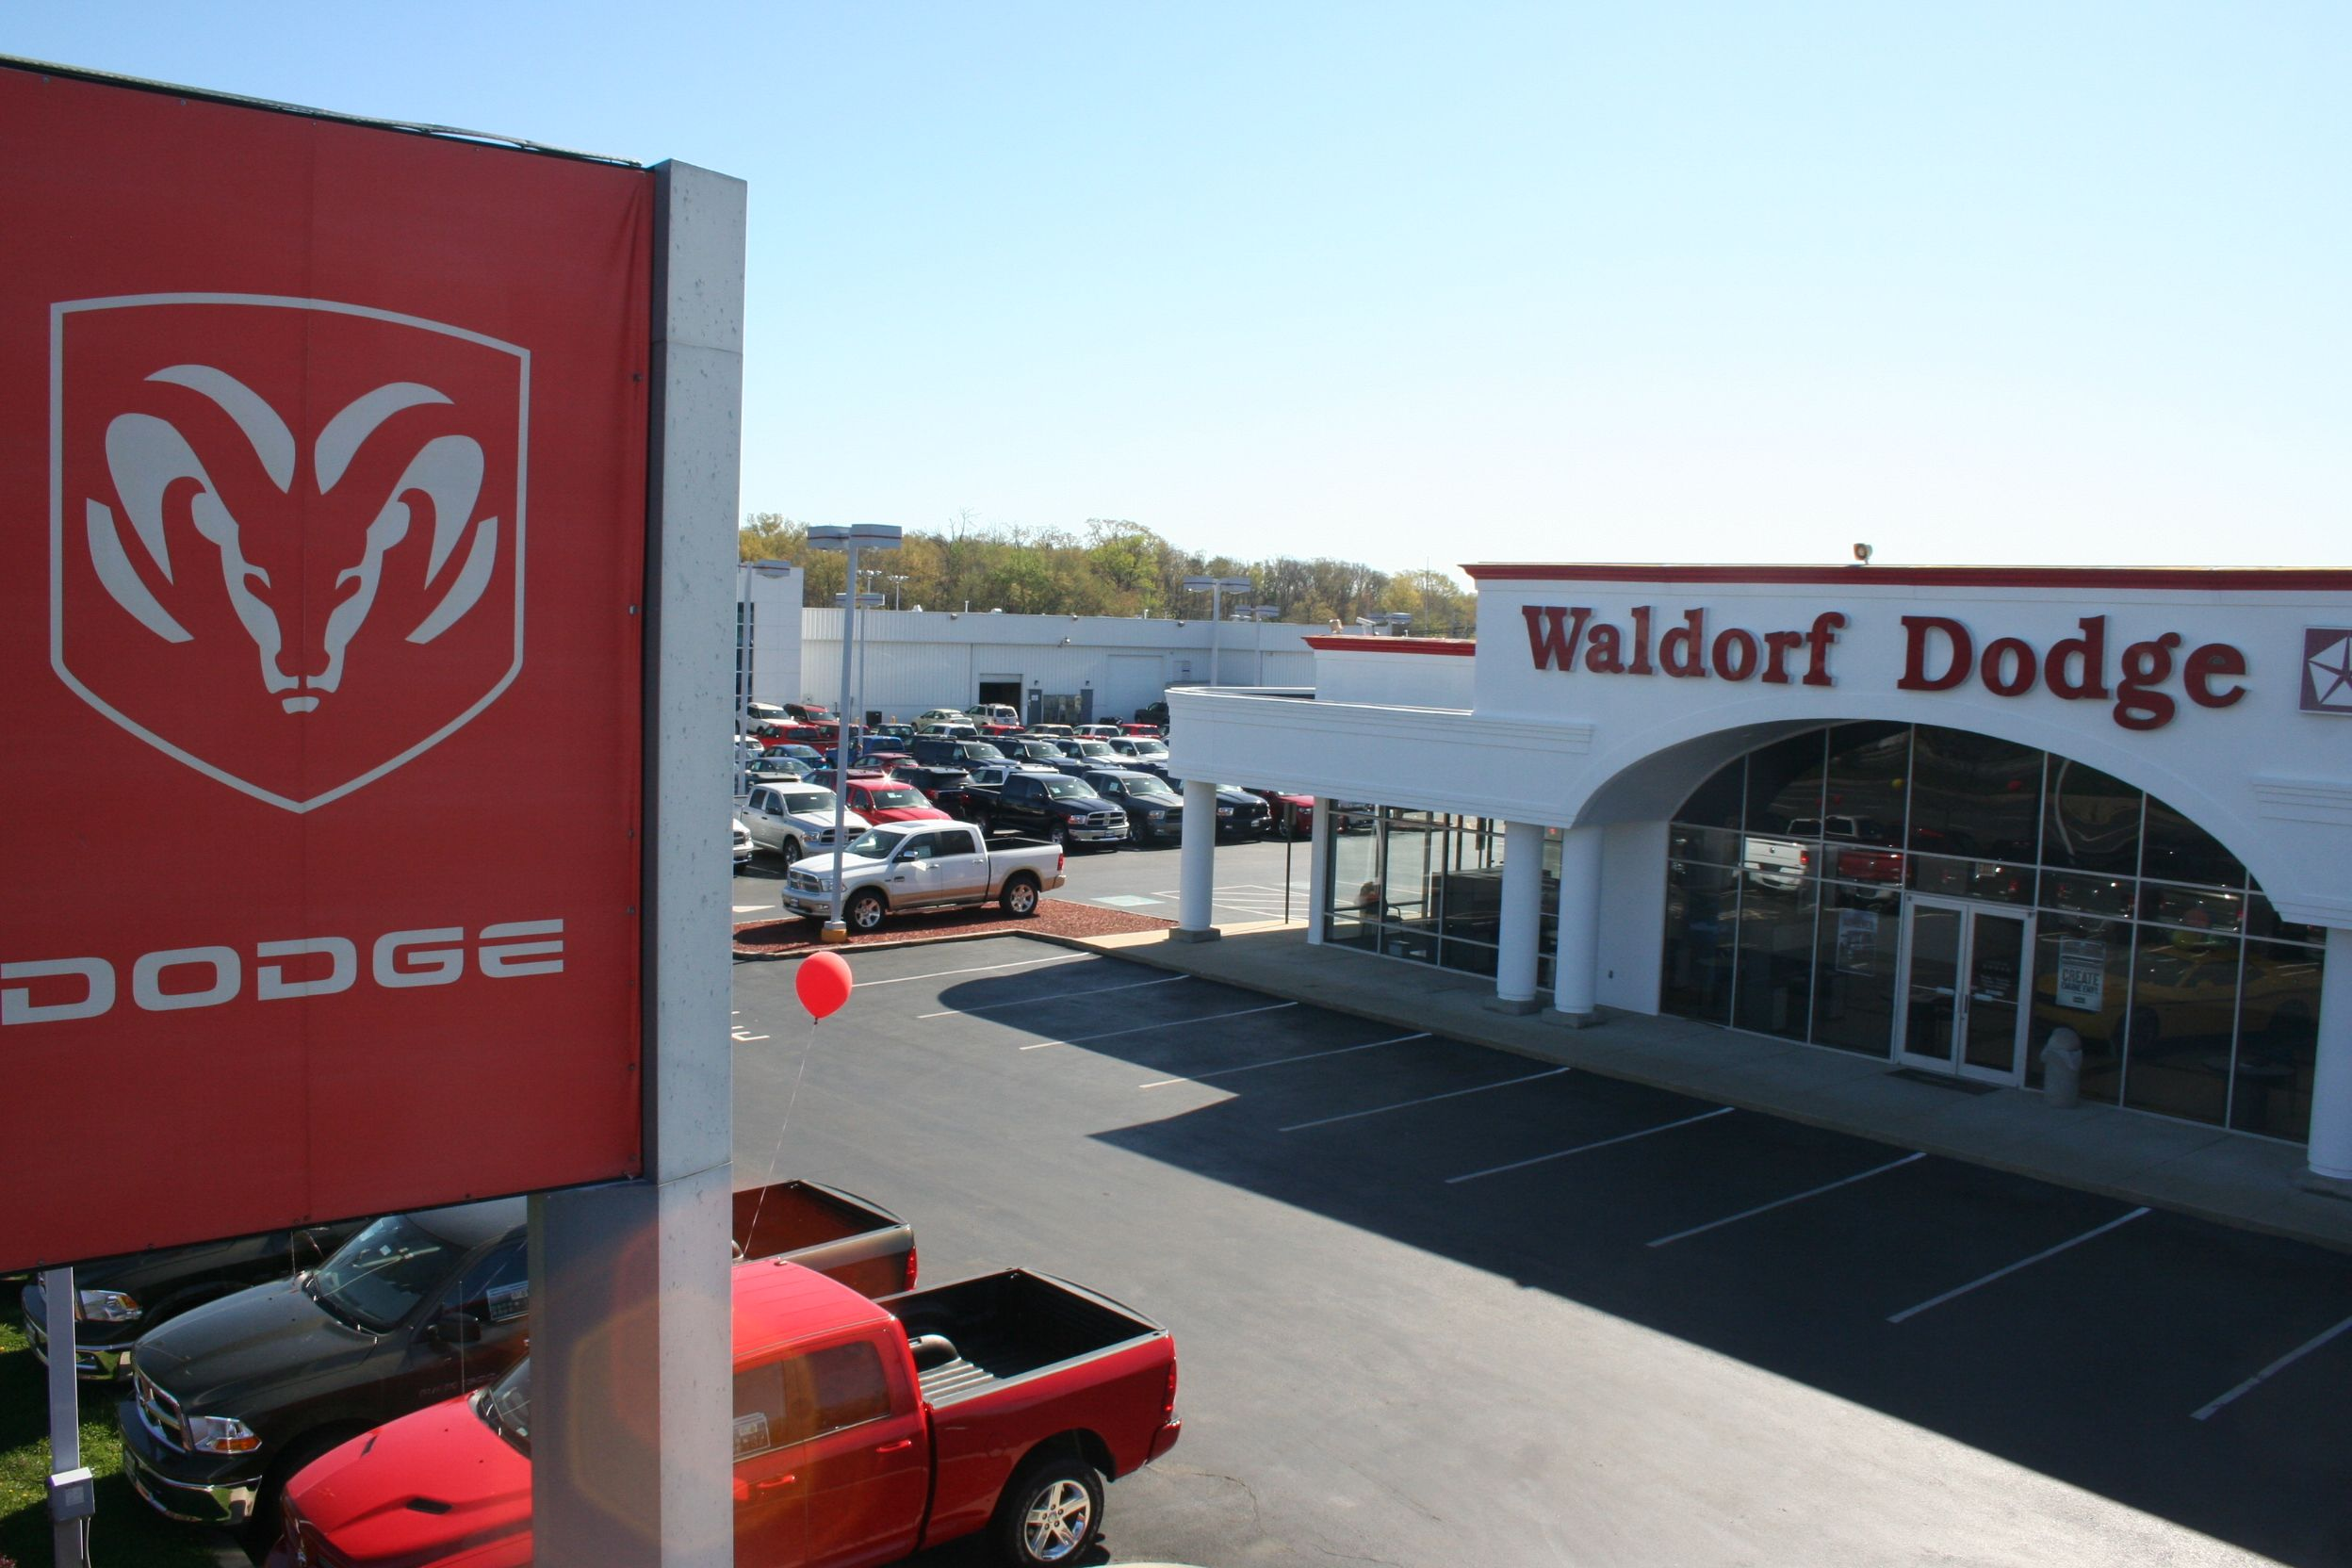 Waldorf Dodge Route 301N in Waldorf MD Our Dealership